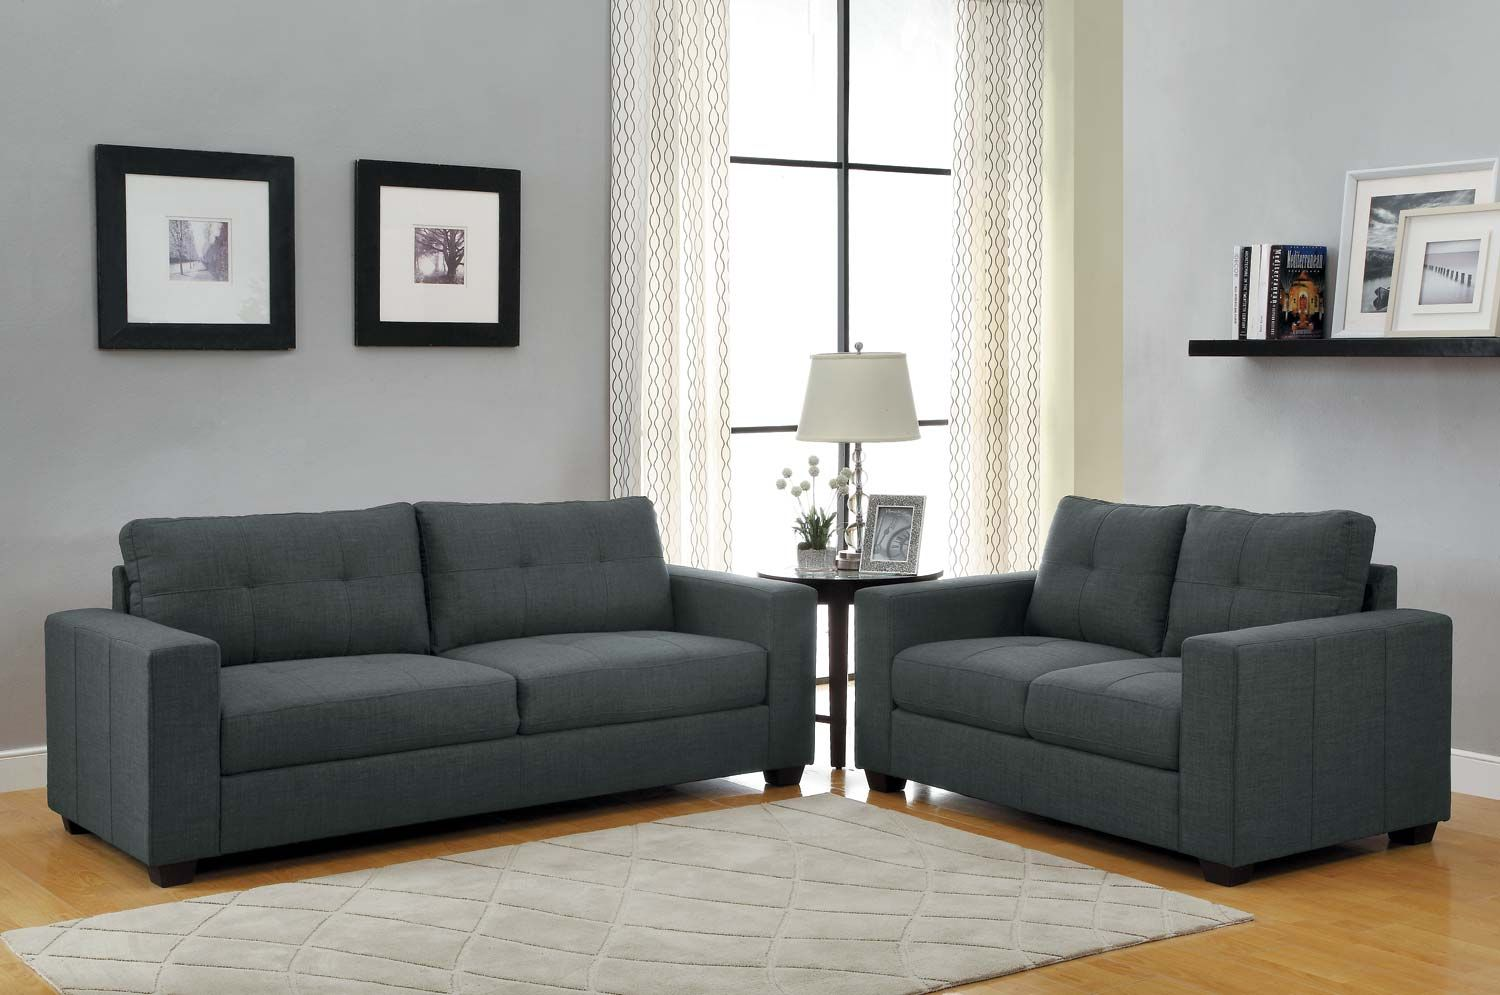 Homelegance Ashmont Sofa Set Dark Grey Linen Living Room